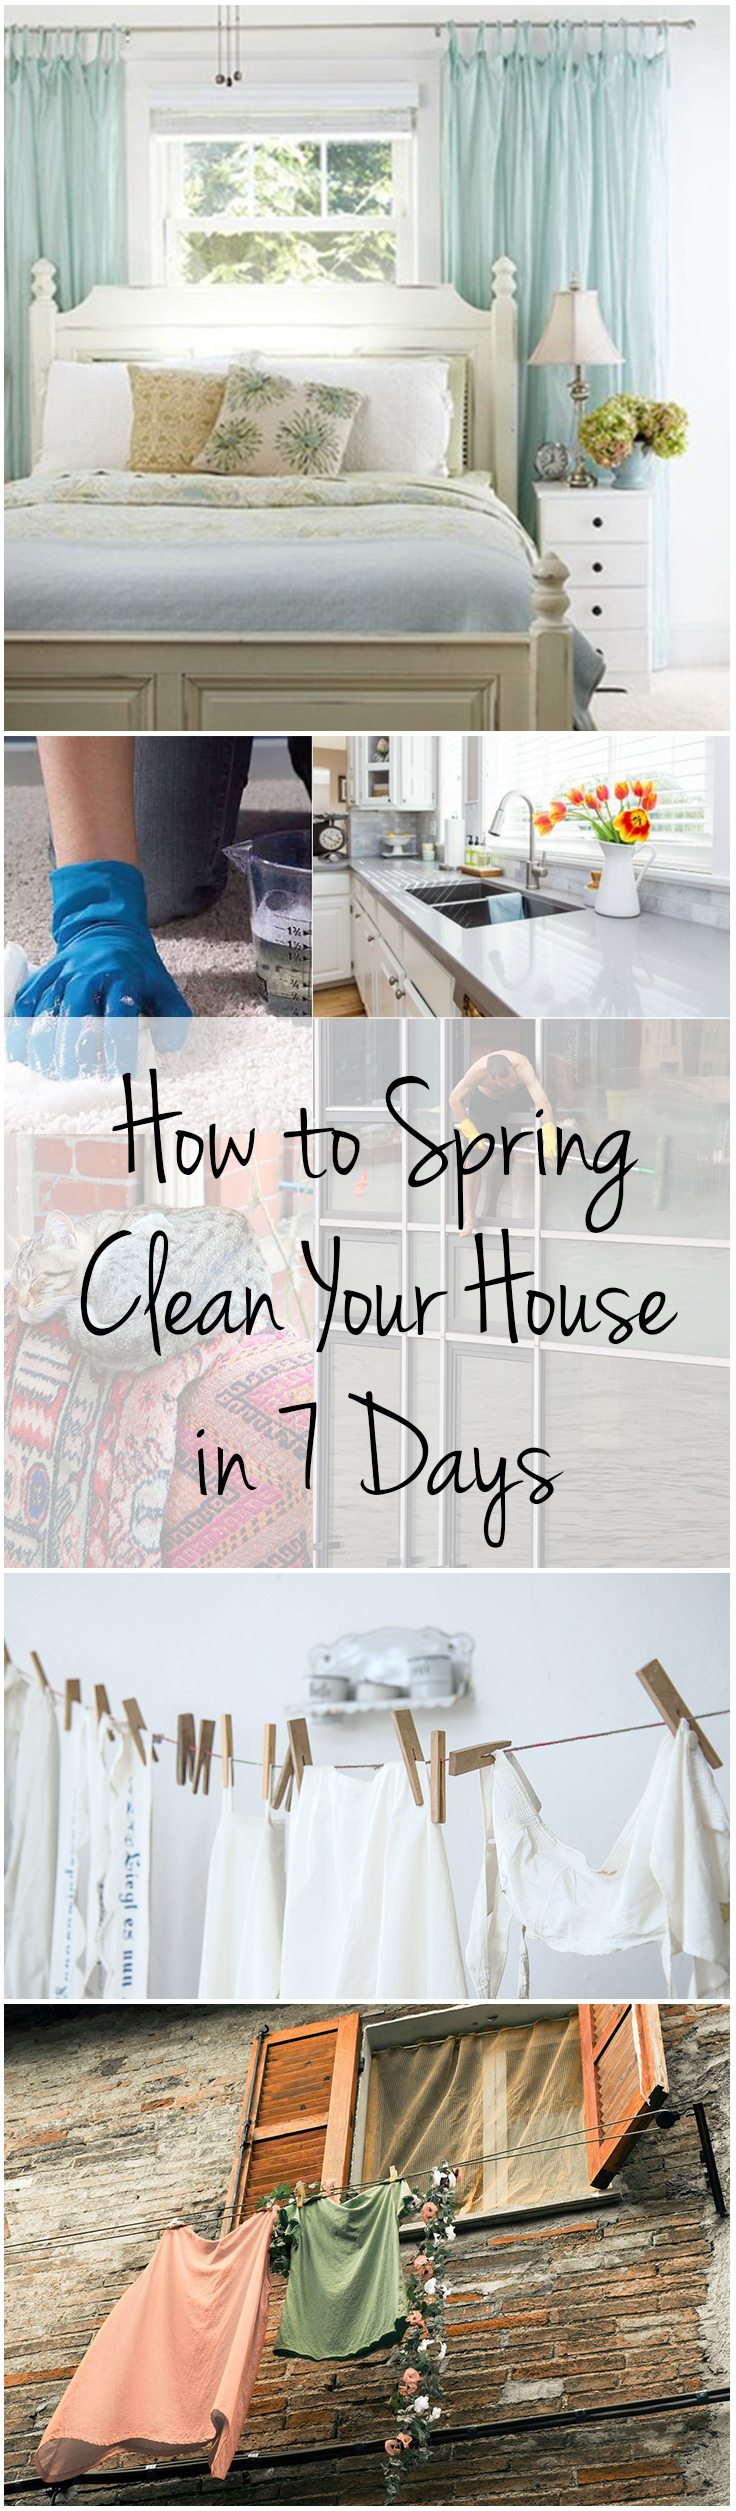 How To Spring Clean Your House In 7 Days Wrapped In Rust